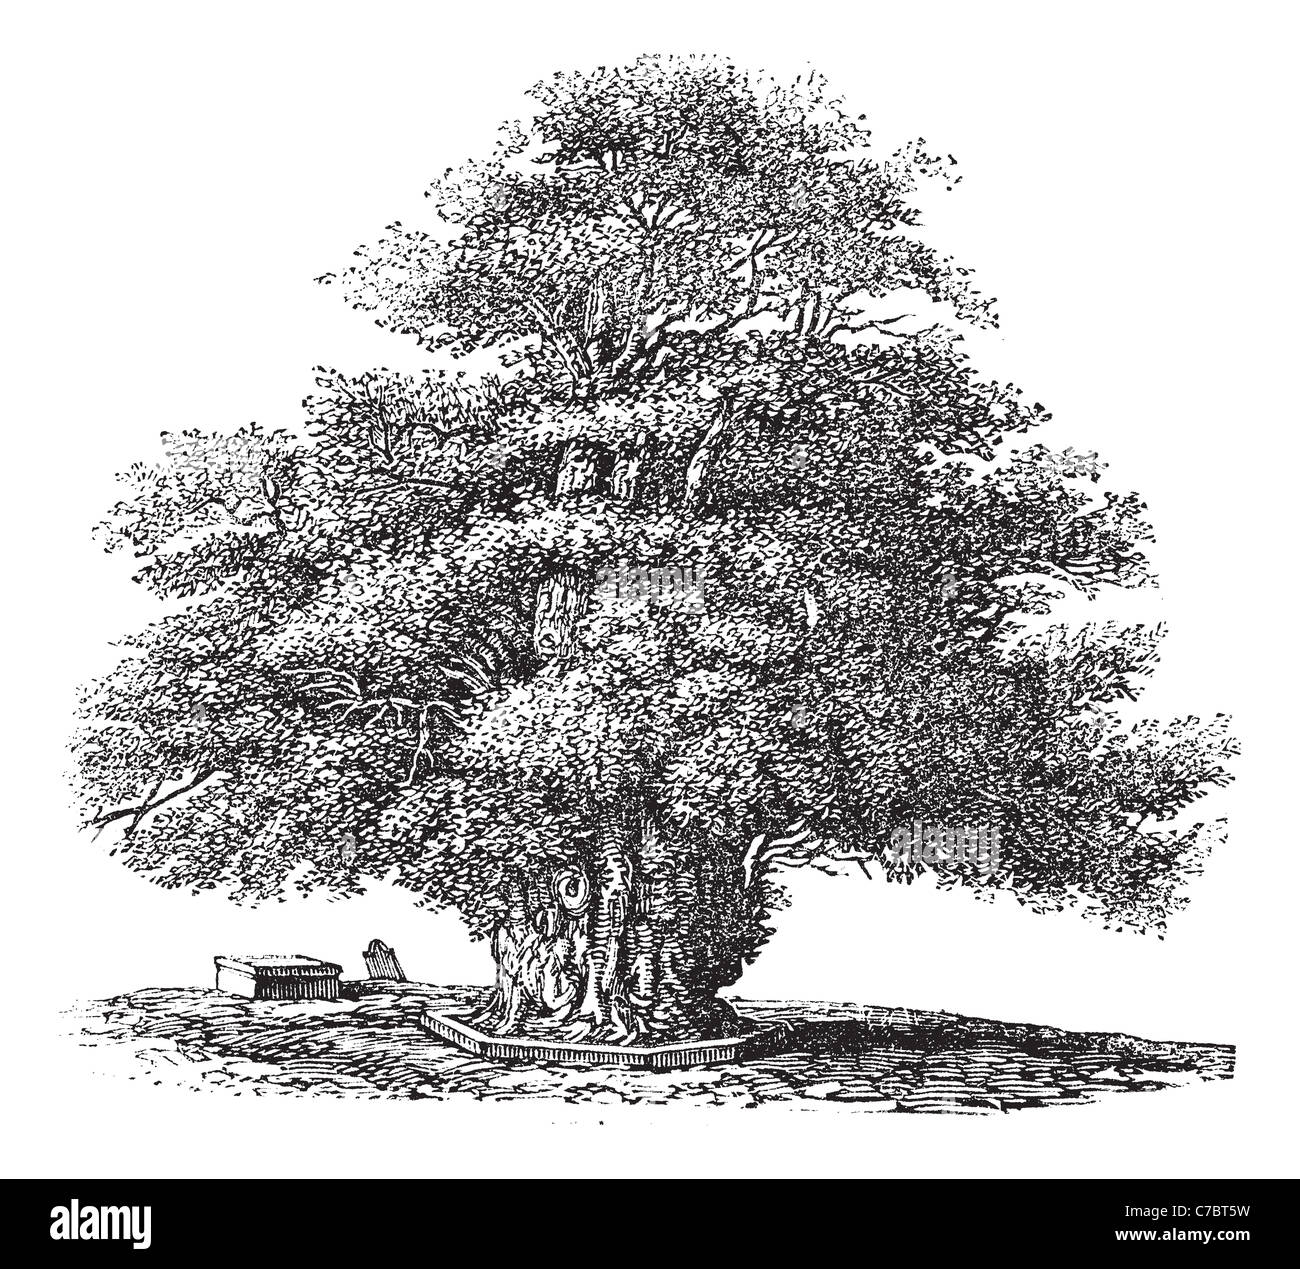 Yew tree or Darley Yew at St. Helens church in Darley, Derbyshire, England, during the 1890s, vintage engraving. - Stock Image